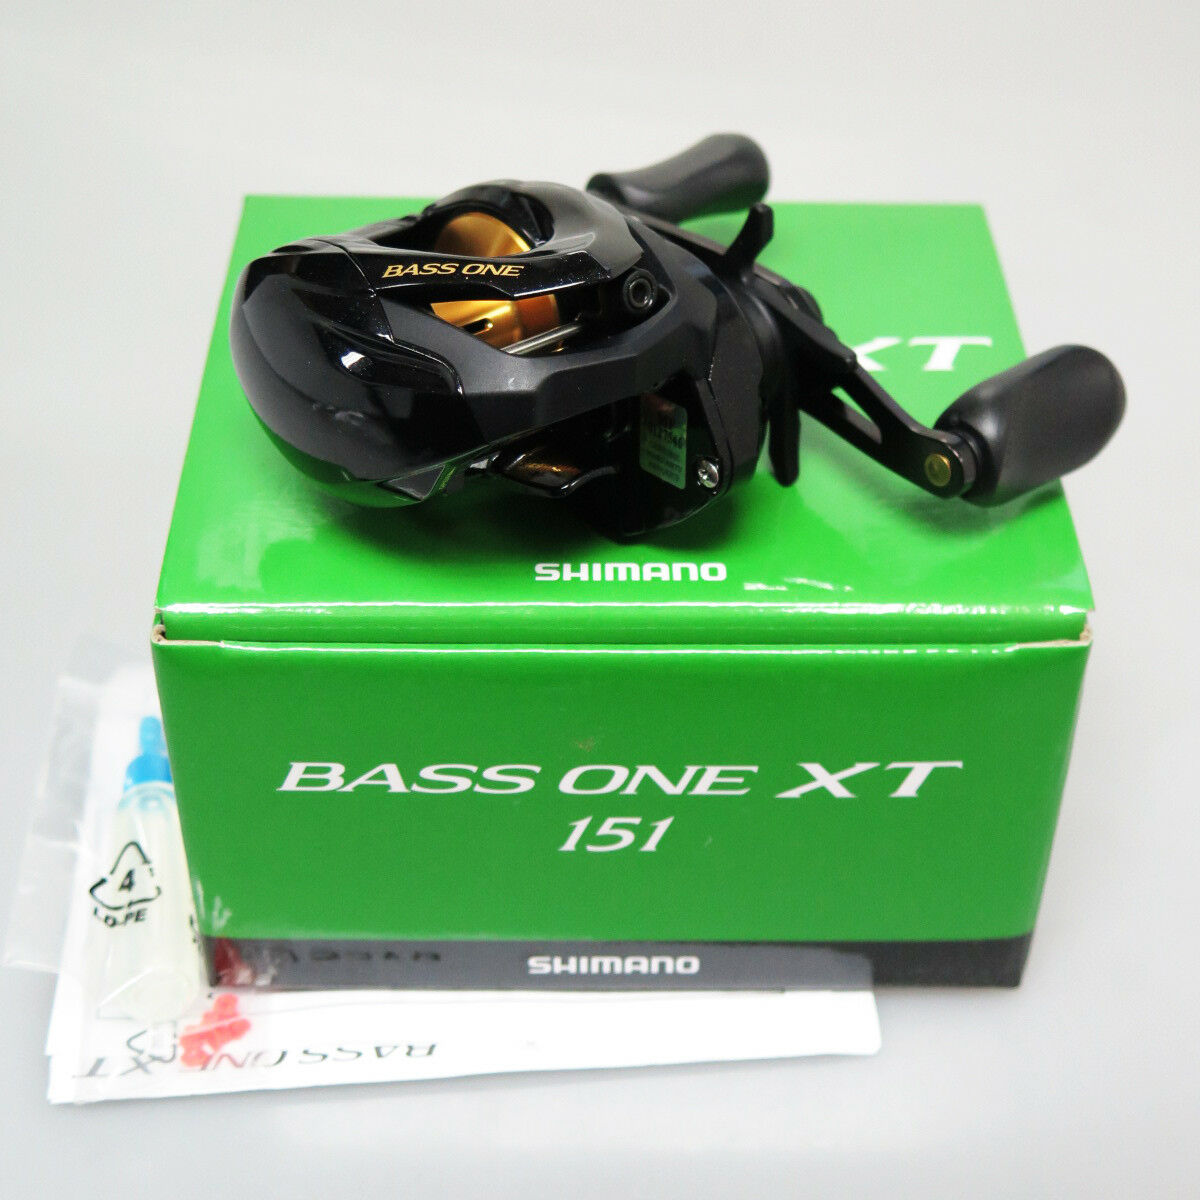 SHIMANO Bass One XT 151 Left BaitCasting Reel Fedex Priority 2day to Usa